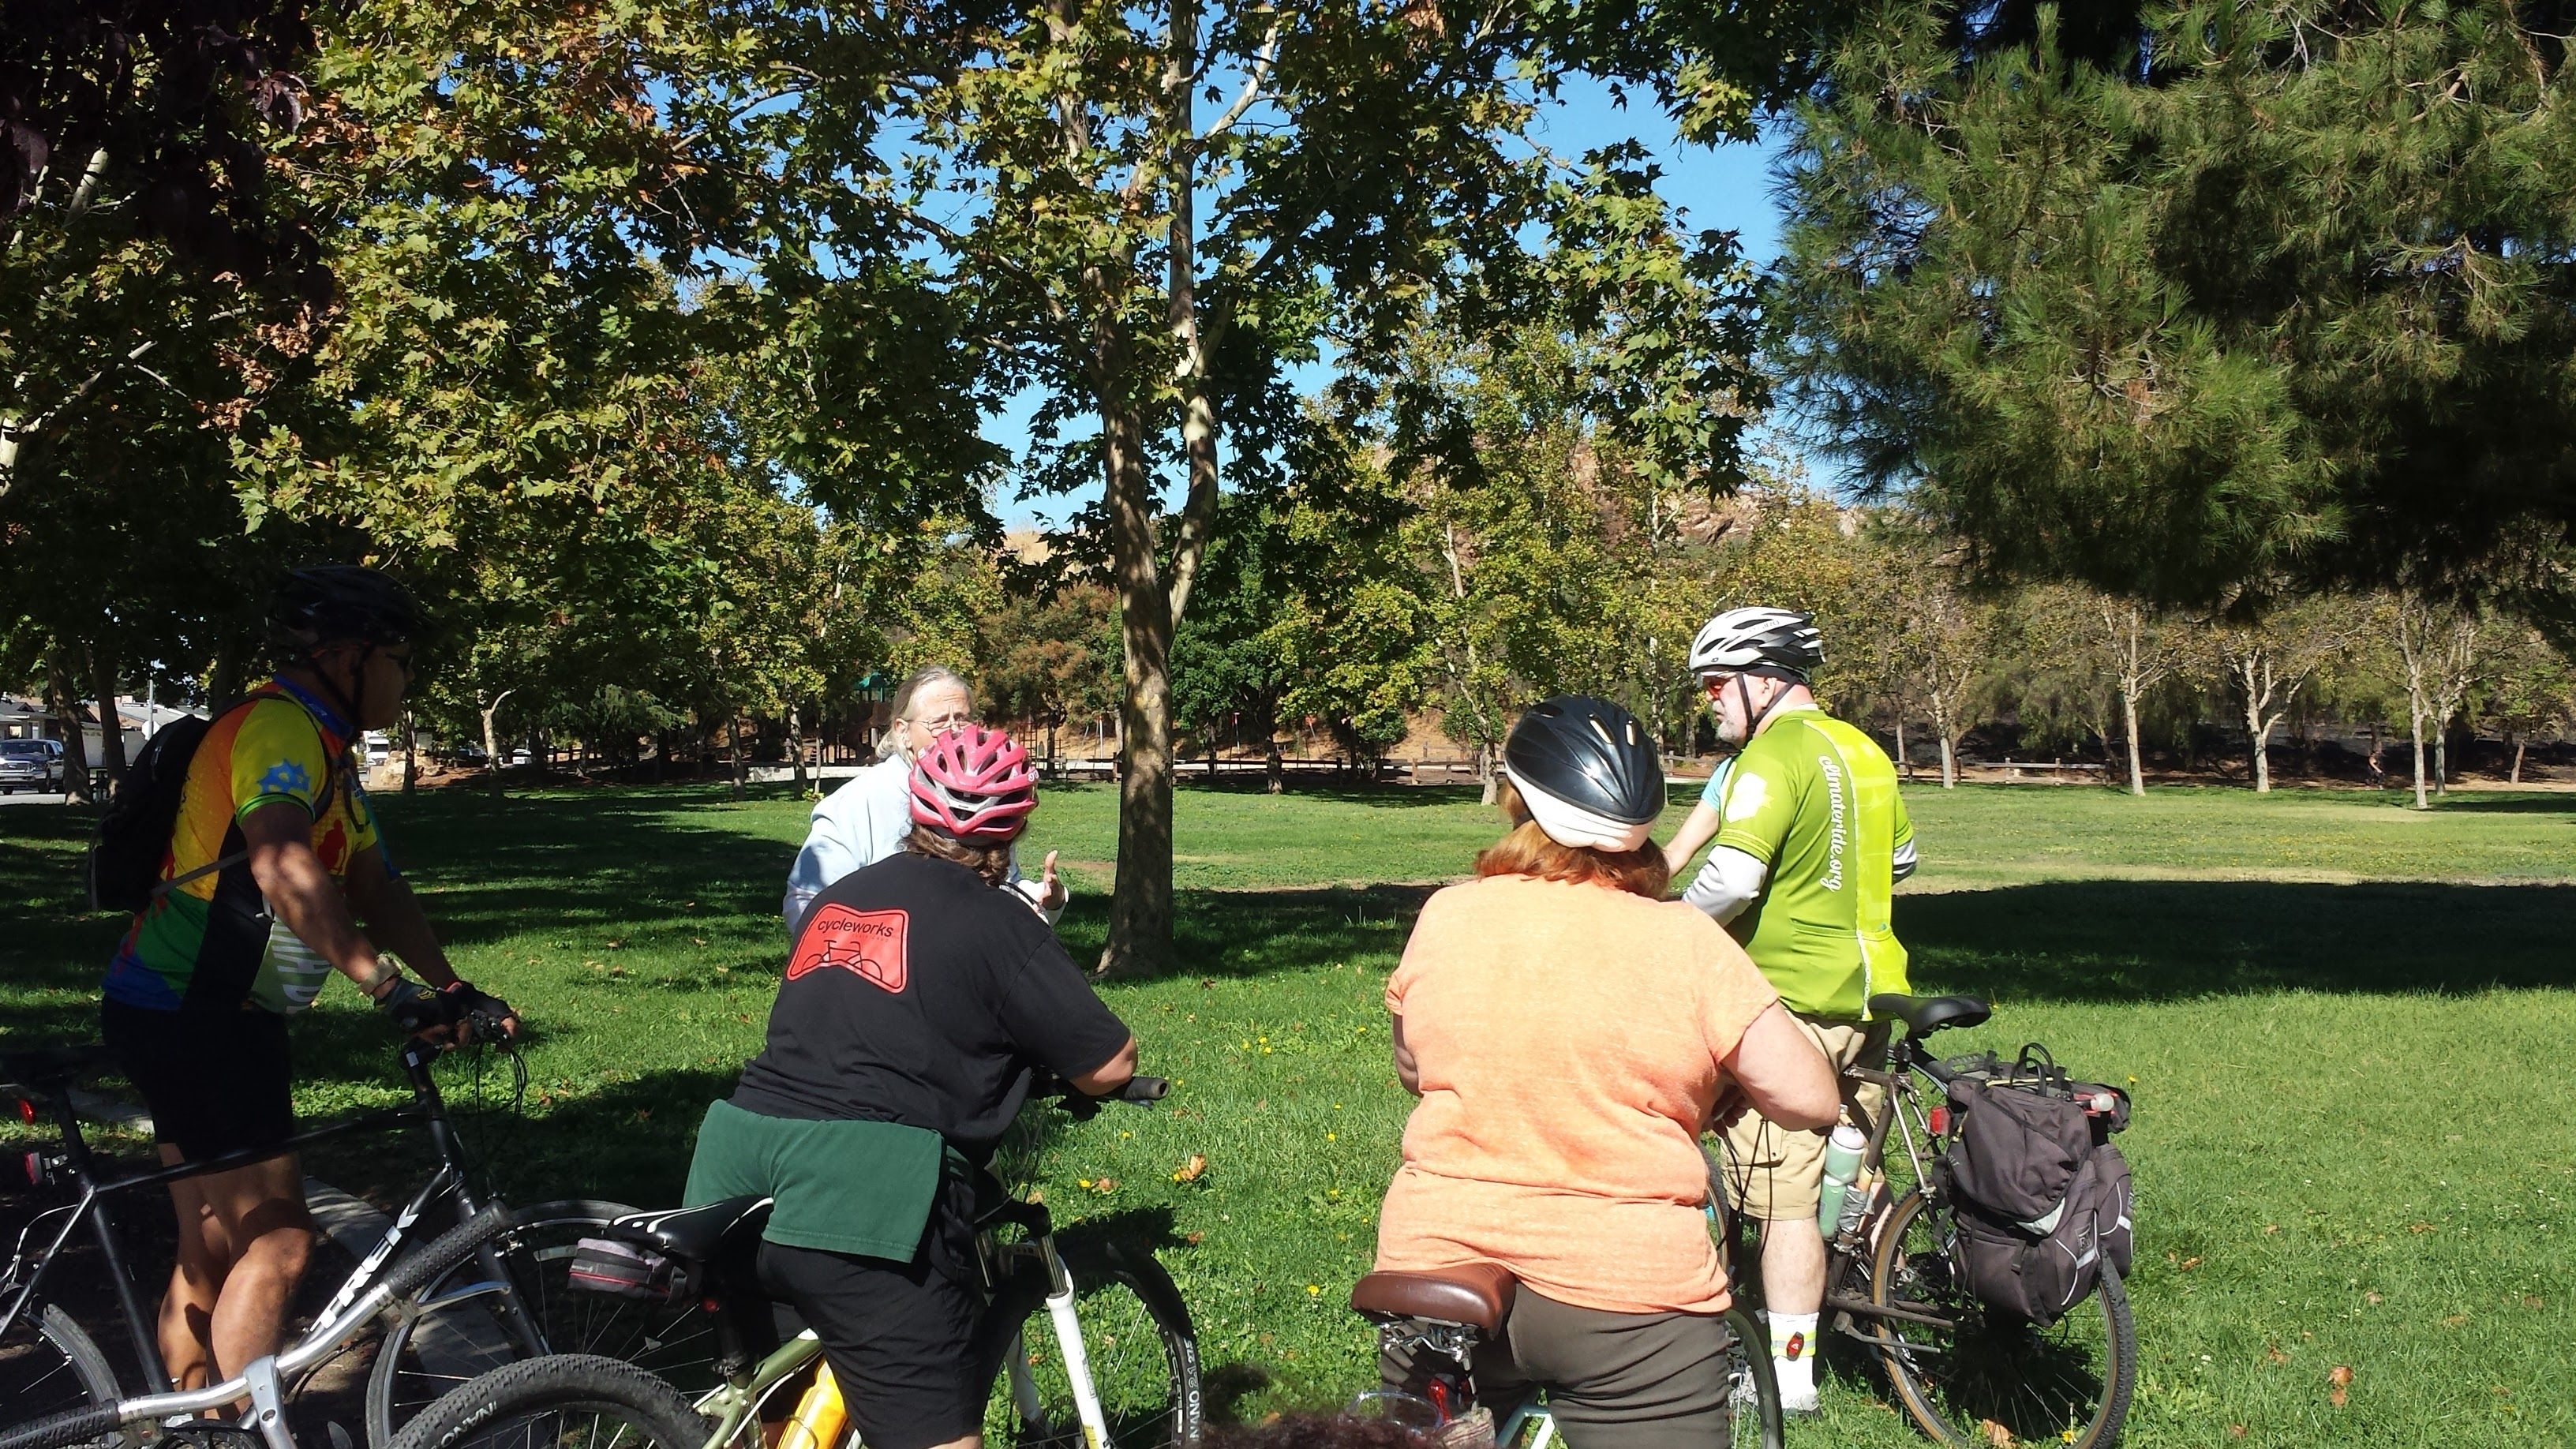 Jean Dresden leading a tour of a San Jose park.